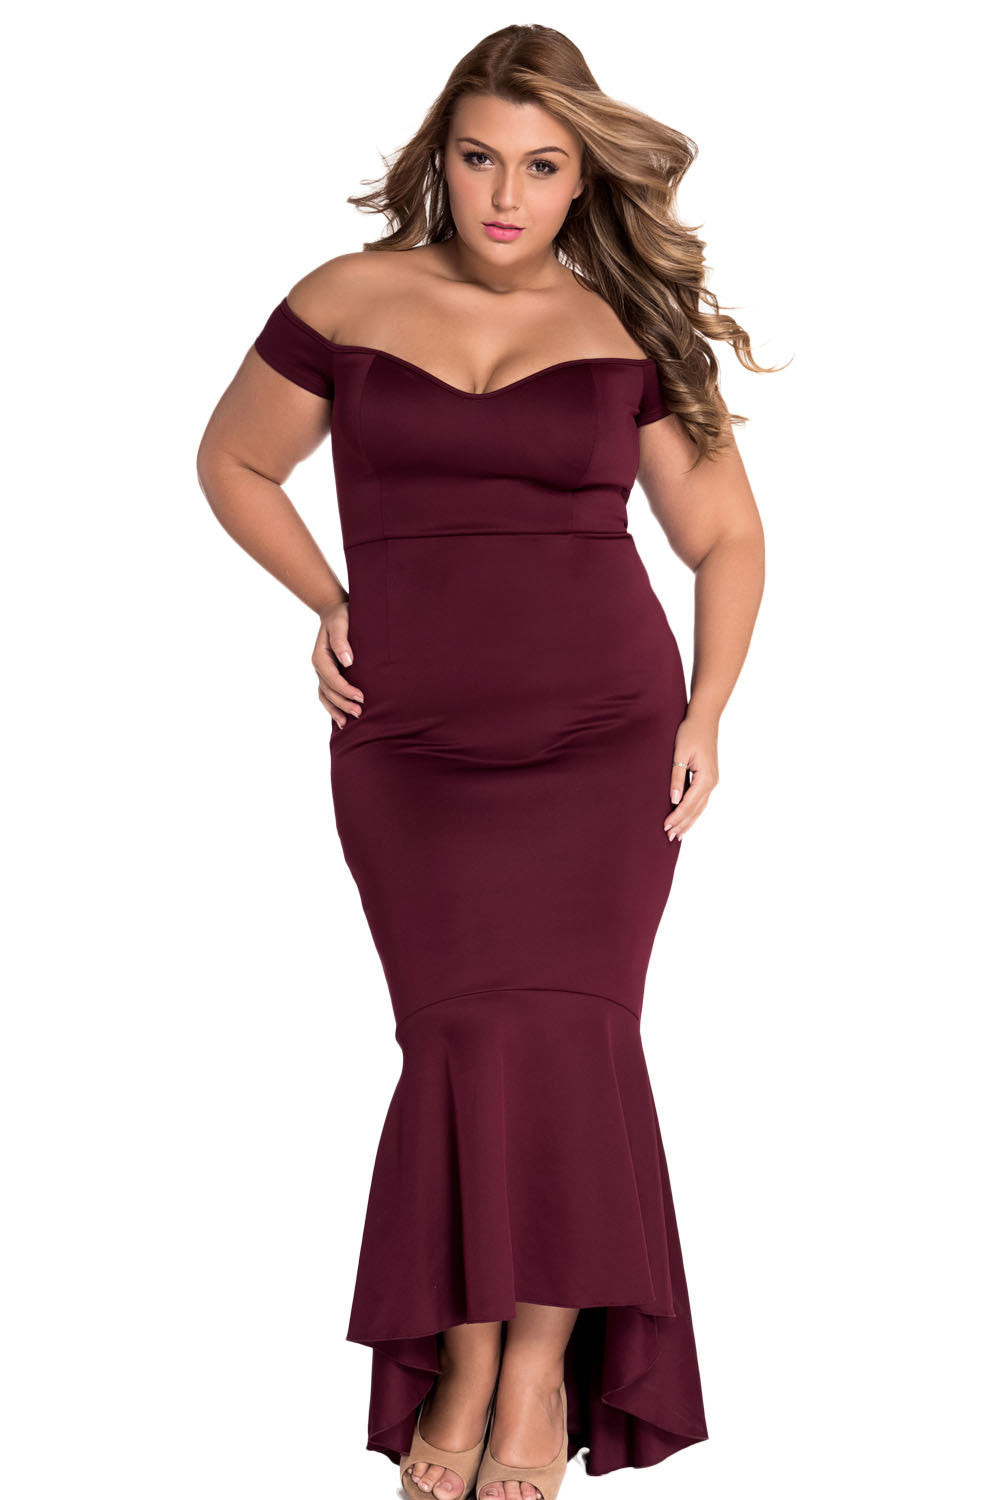 Maroon Beautiful Party Off-Shoulder Mermaid Evening Dress